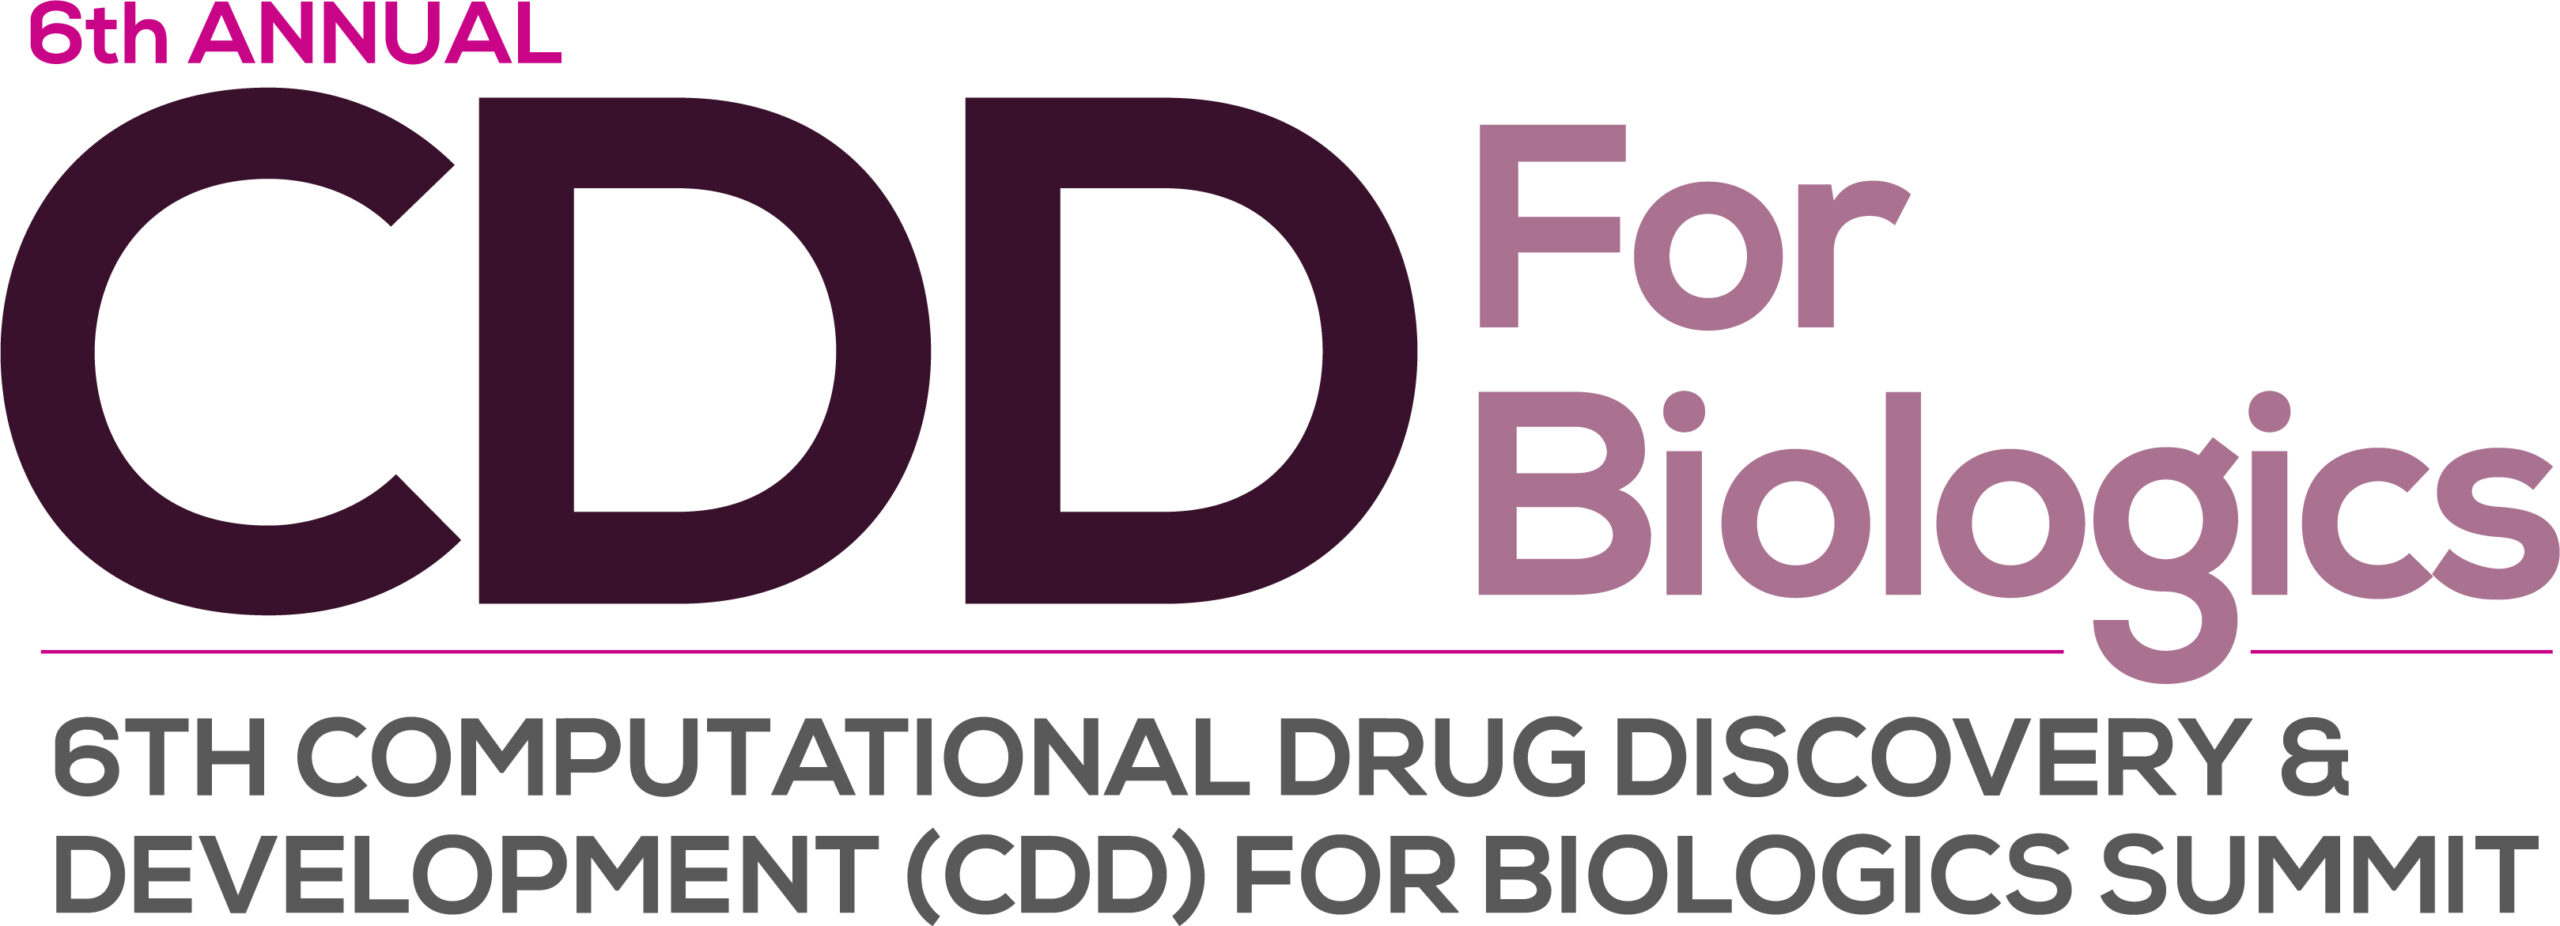 CDD For Biologics 2021 Logo